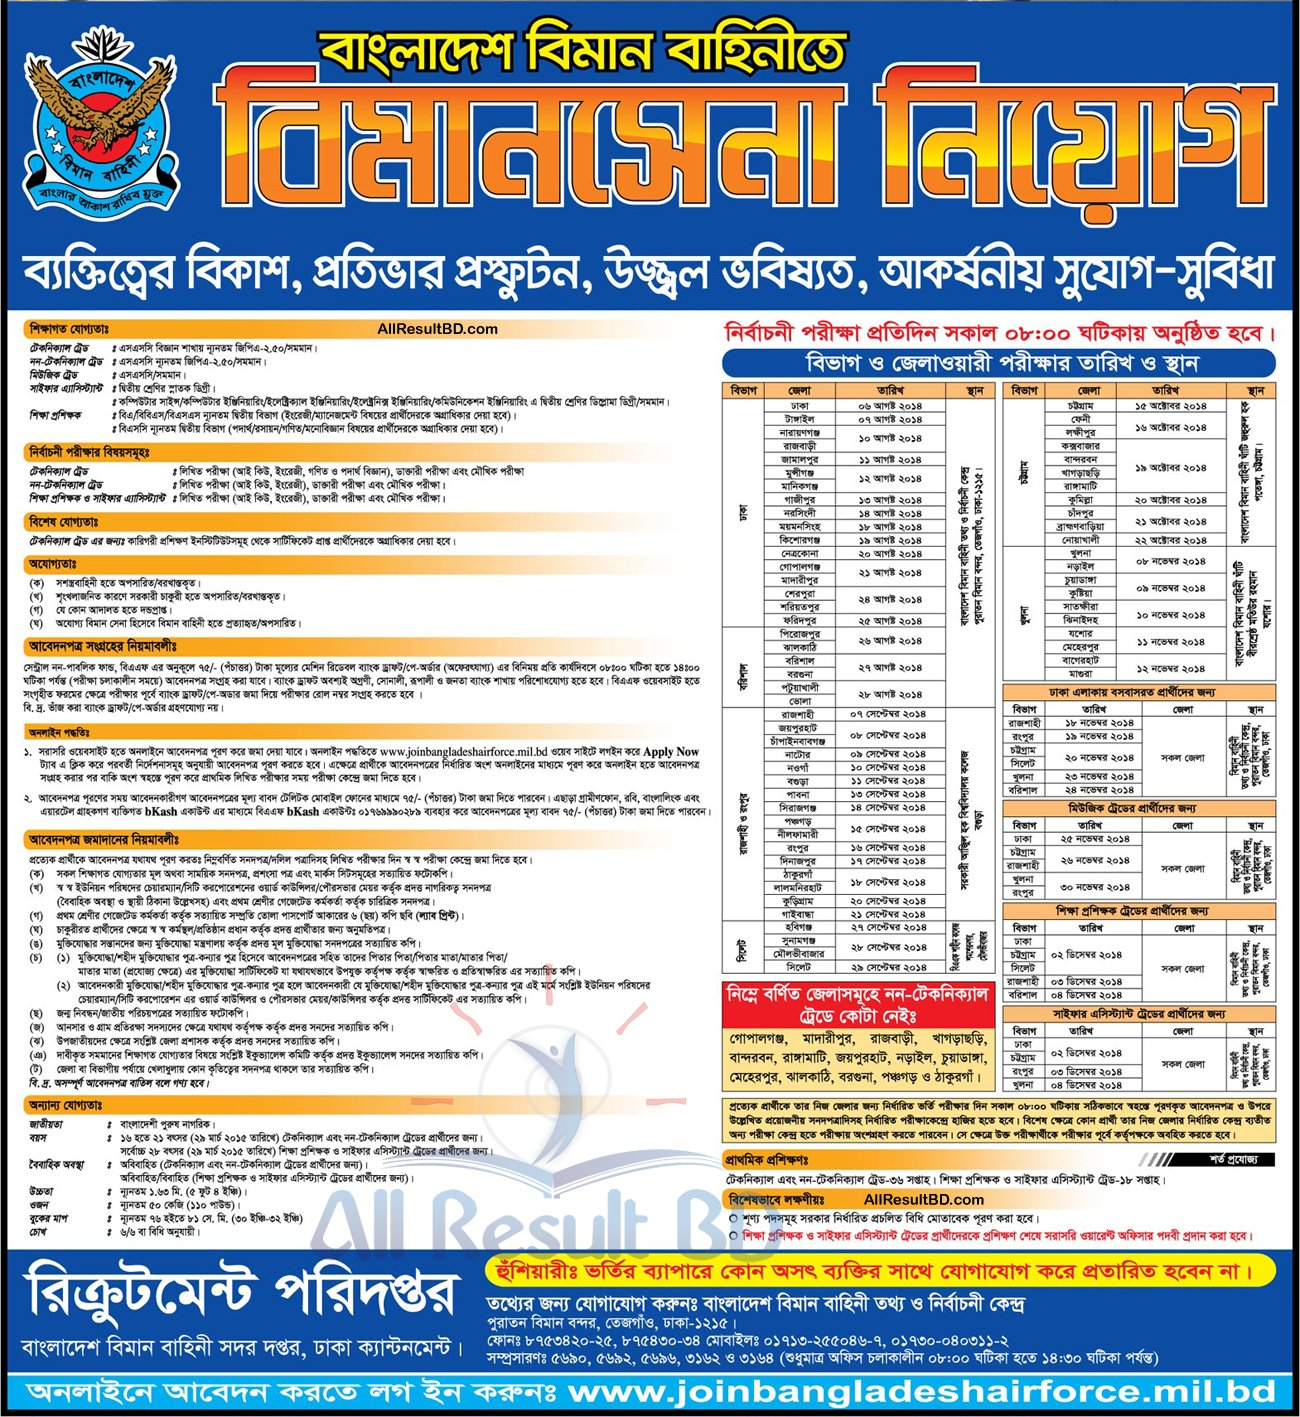 Bangladesh Air Force recruitment Circular 2014 www ...